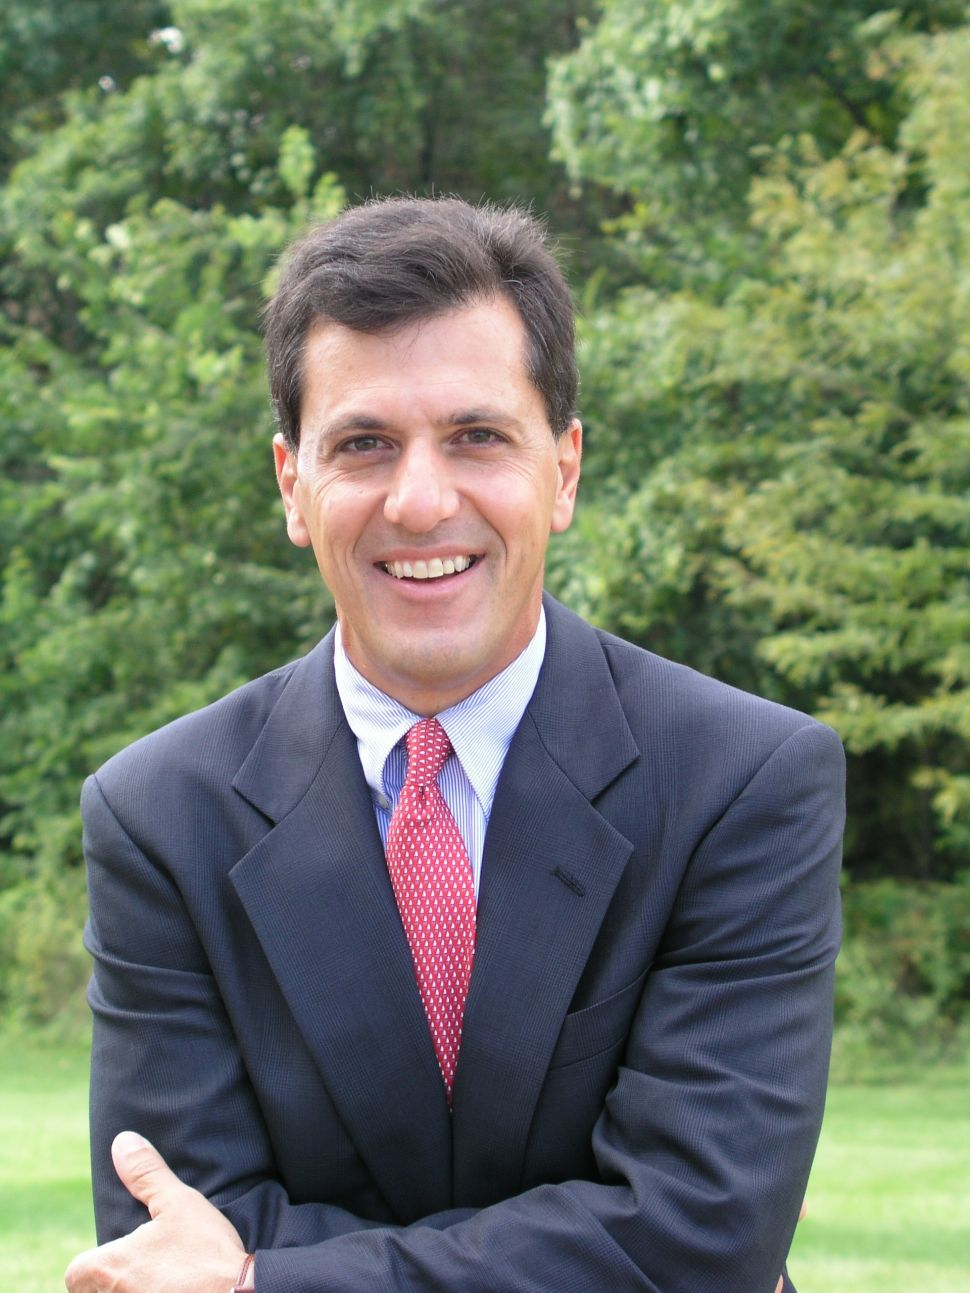 Mark Caliguire to screen for freeholder in Somerset